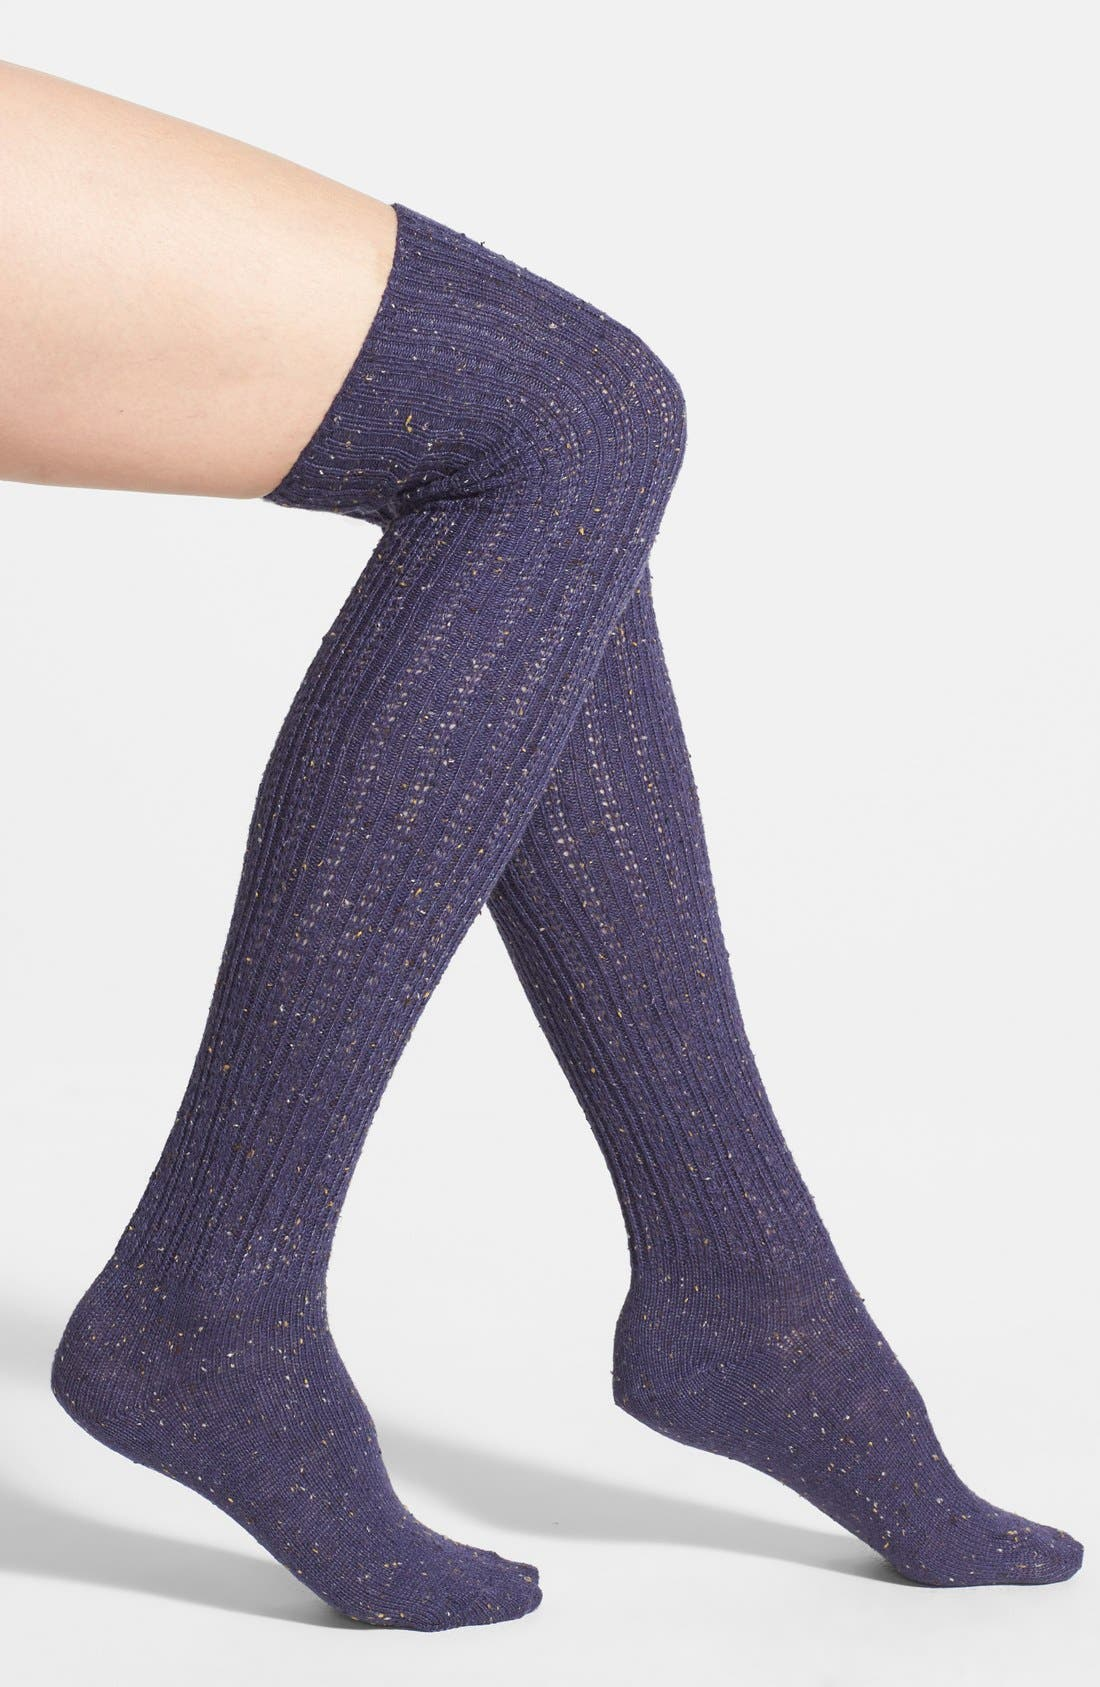 Alternate Image 1 Selected - Free People Speckled Over the Knee Socks